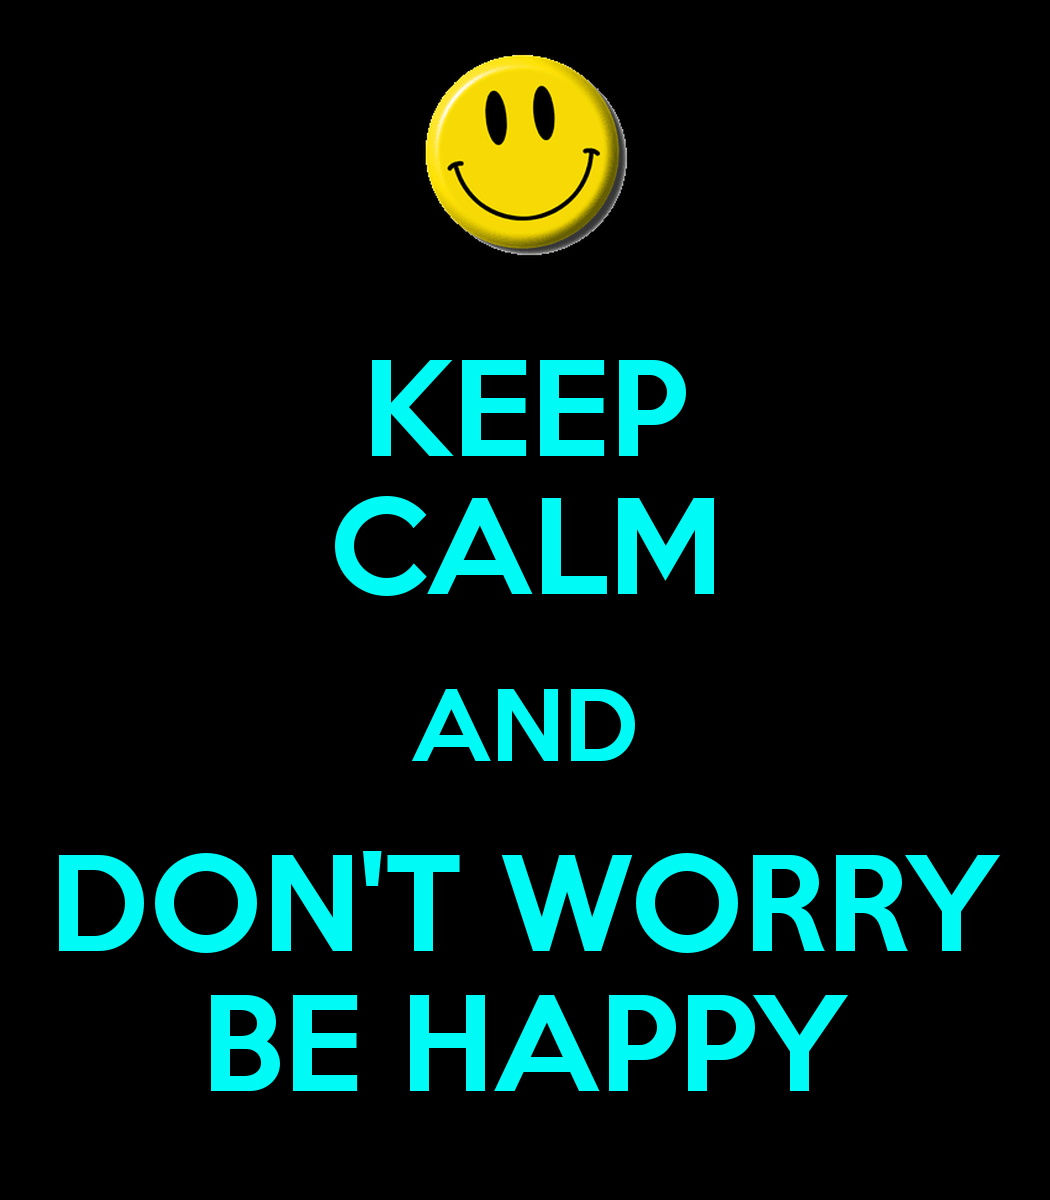 KEEP CALM AND DONT WORRY BE HAPPY   KEEP CALM AND CARRY ON Image 1050x1200